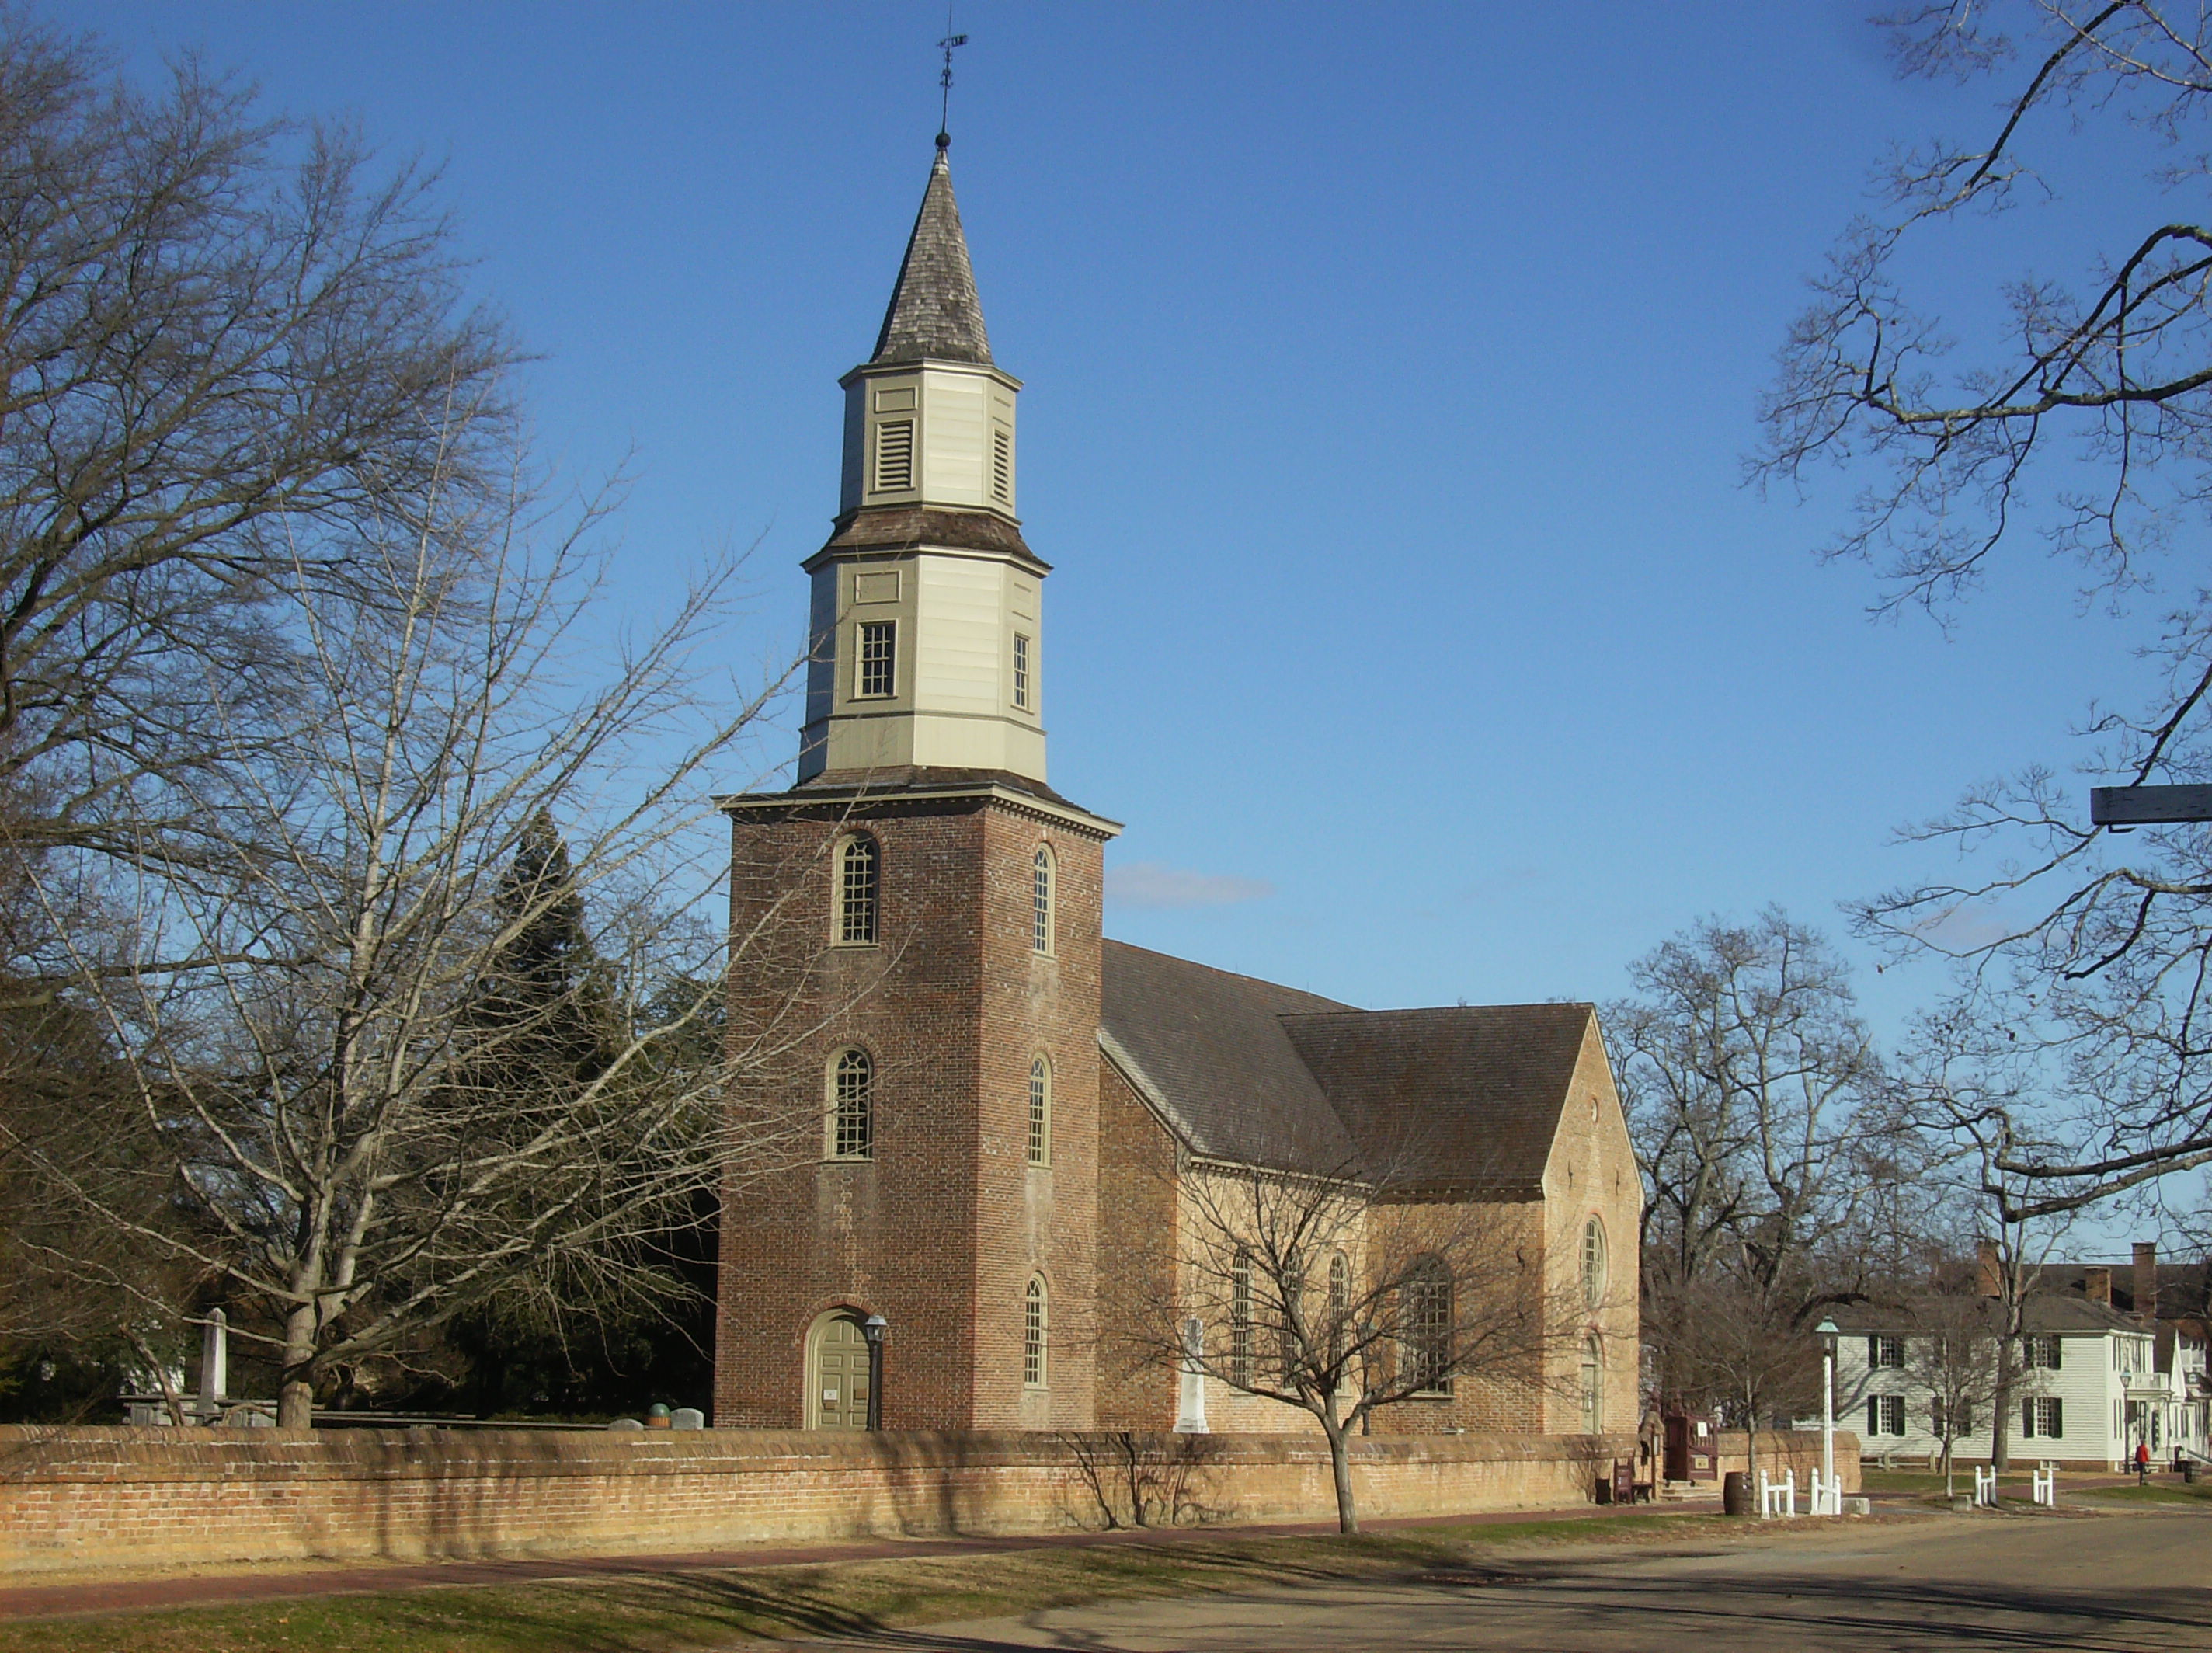 Bruton Parish Church from Duke of Gloucester Street. Image by Michael Kotrady (CC BY-SA 3.0)